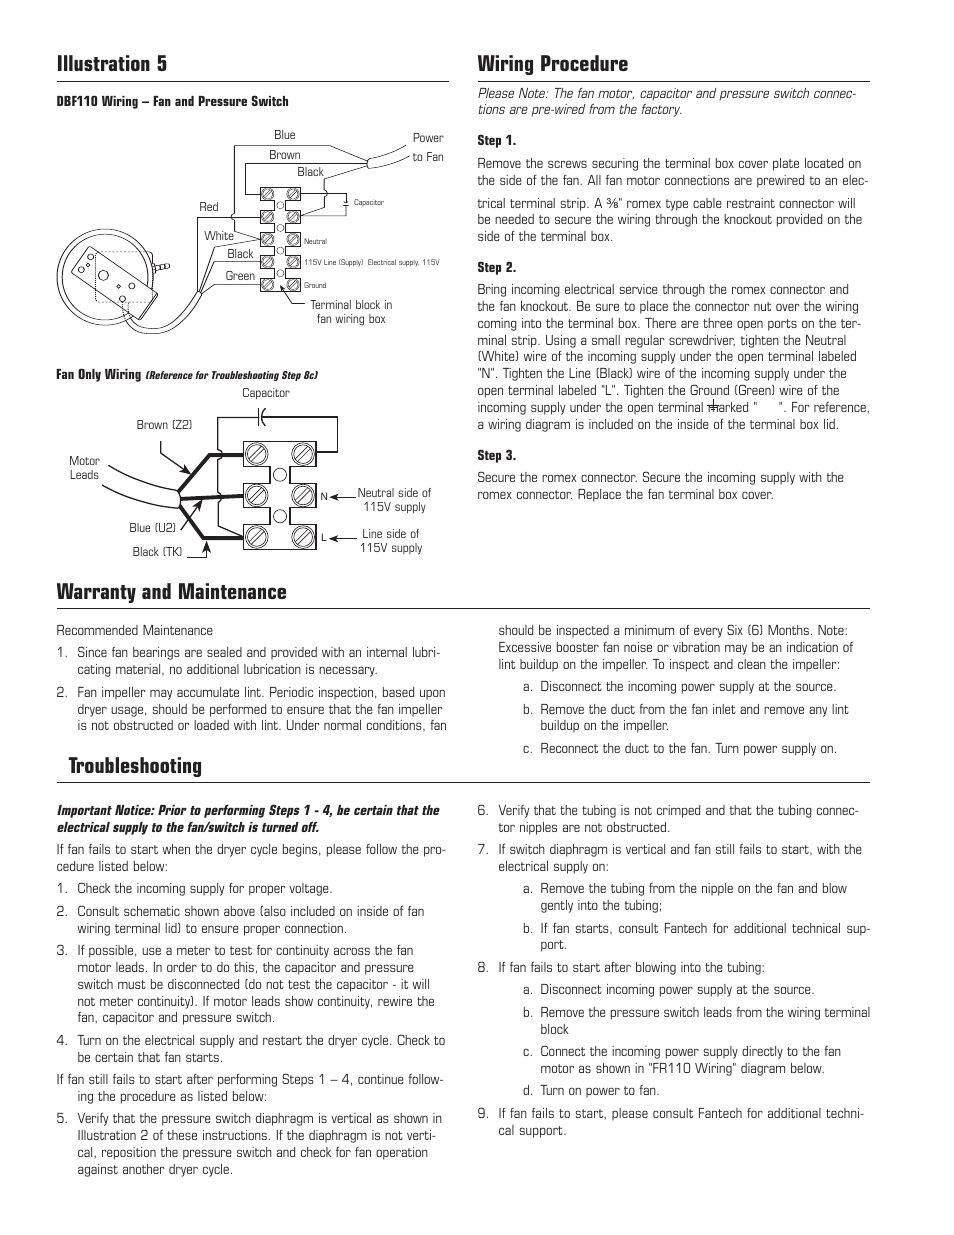 Fantech Wiring Diagrams 23 Diagram Images Shr 1 Series Hot Rails Dbf110 Page4 Procedure Illustration 5 Warranty And Maintenance At